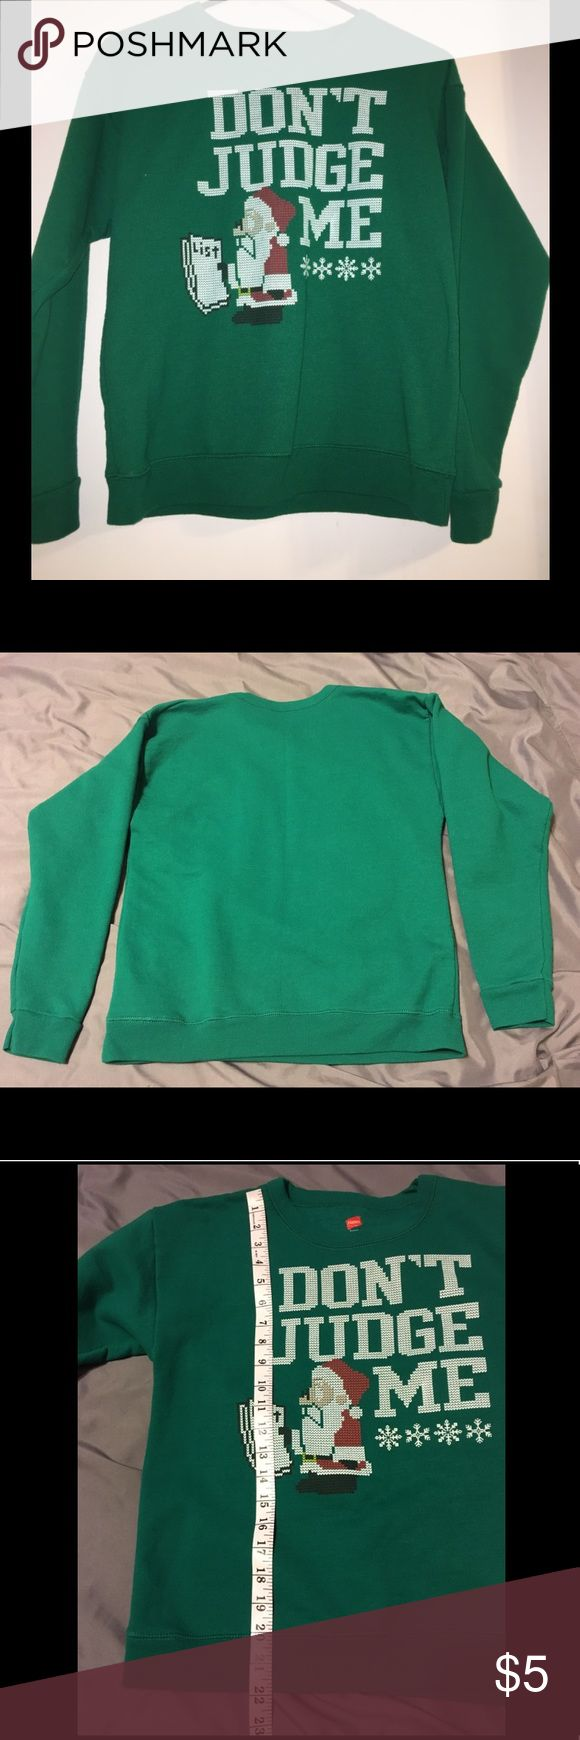 Hanes Kids Unisex Christmas Sweatshirt Size 12/14 Pre-owned. No rips, tears, or stains.   50% Cotton, 50% Polyester. Machine wash cold. Shirts & Tops Sweatshirts & Hoodies